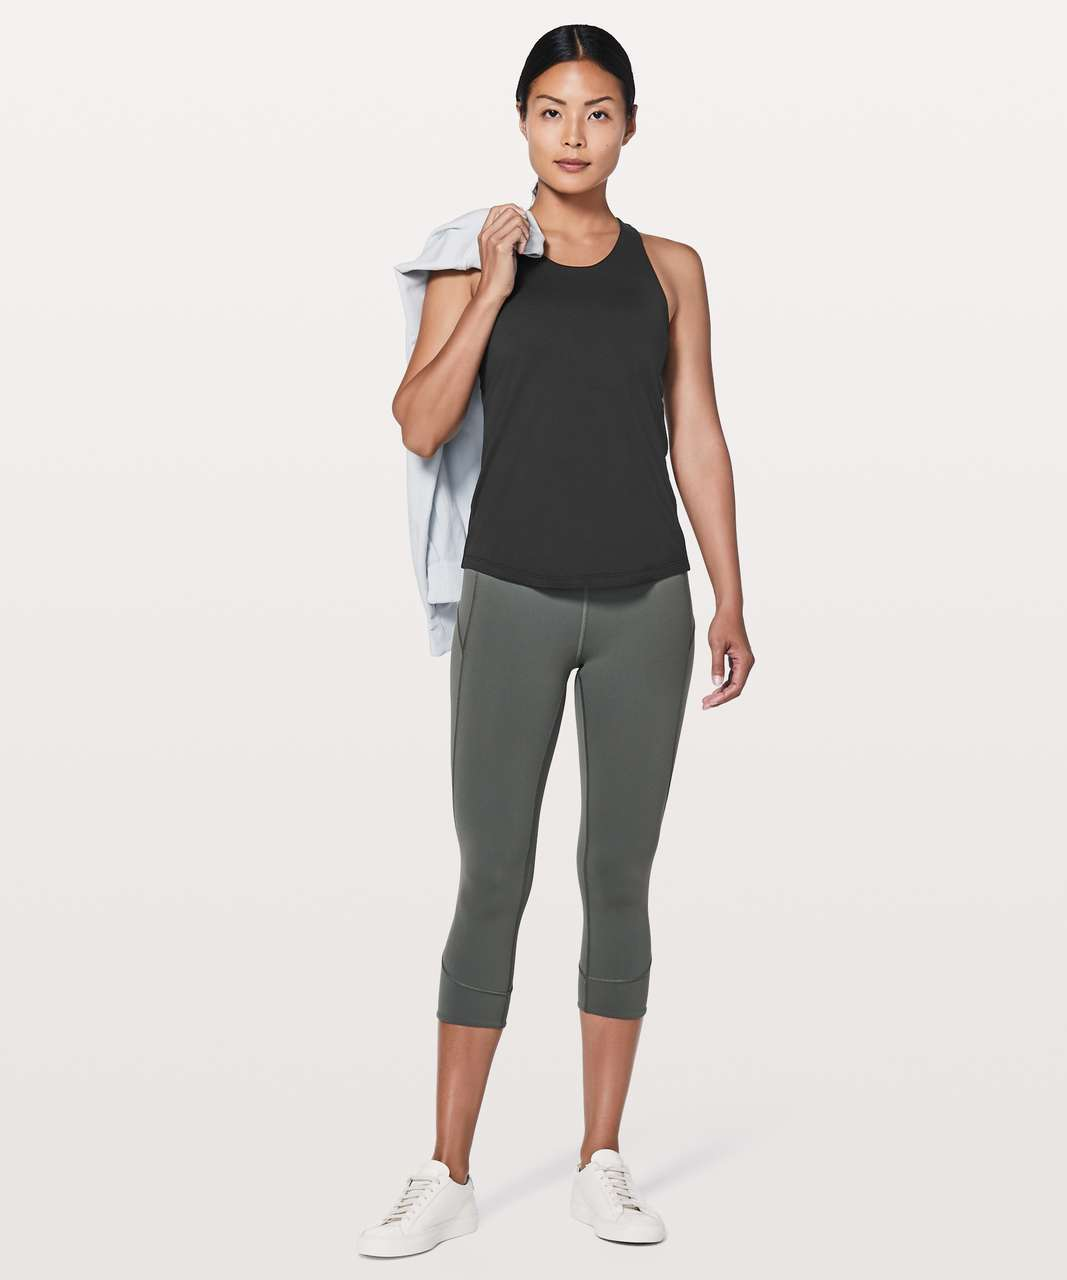 Lululemon Sweat Reps 2 In 1 Tank - Black